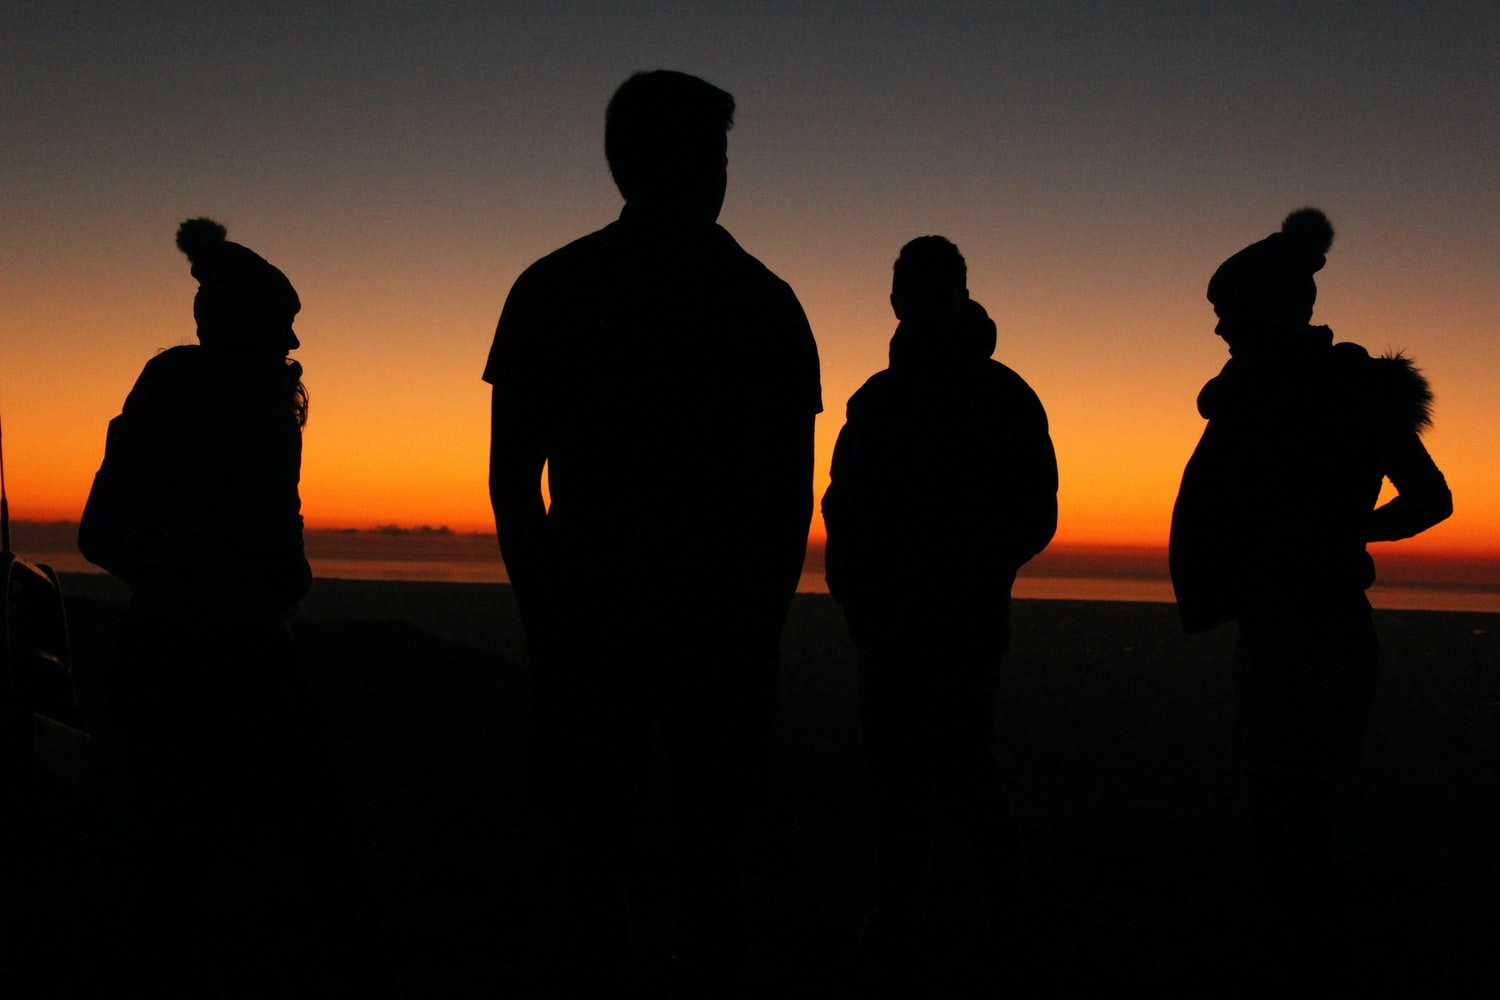 silhouette of four persons standing during sunset